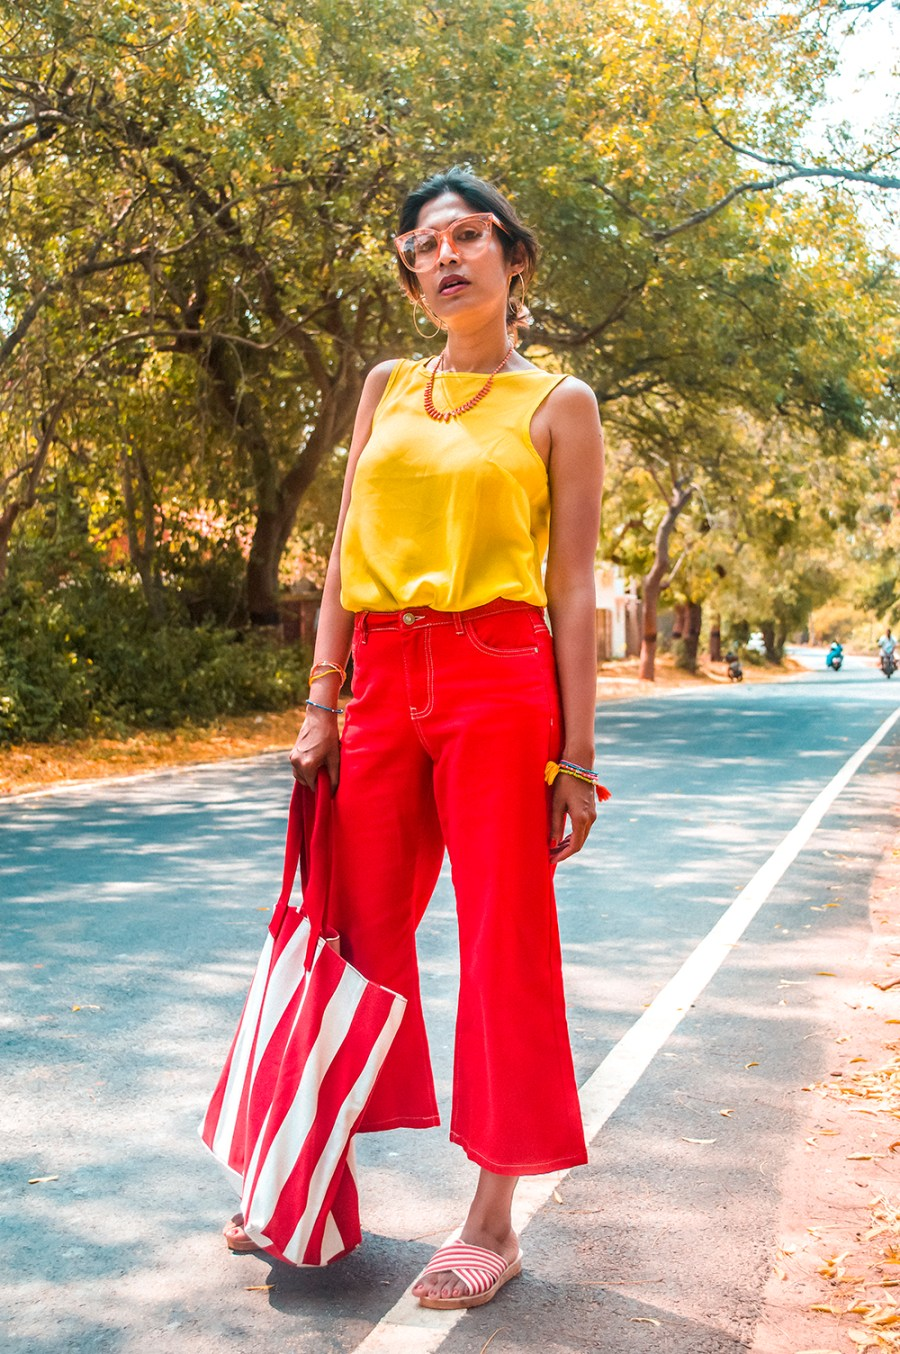 Neon Colors, Fashion Blogger, Colourful outfit, Street Style, Fashion Photography, Summer Style-1